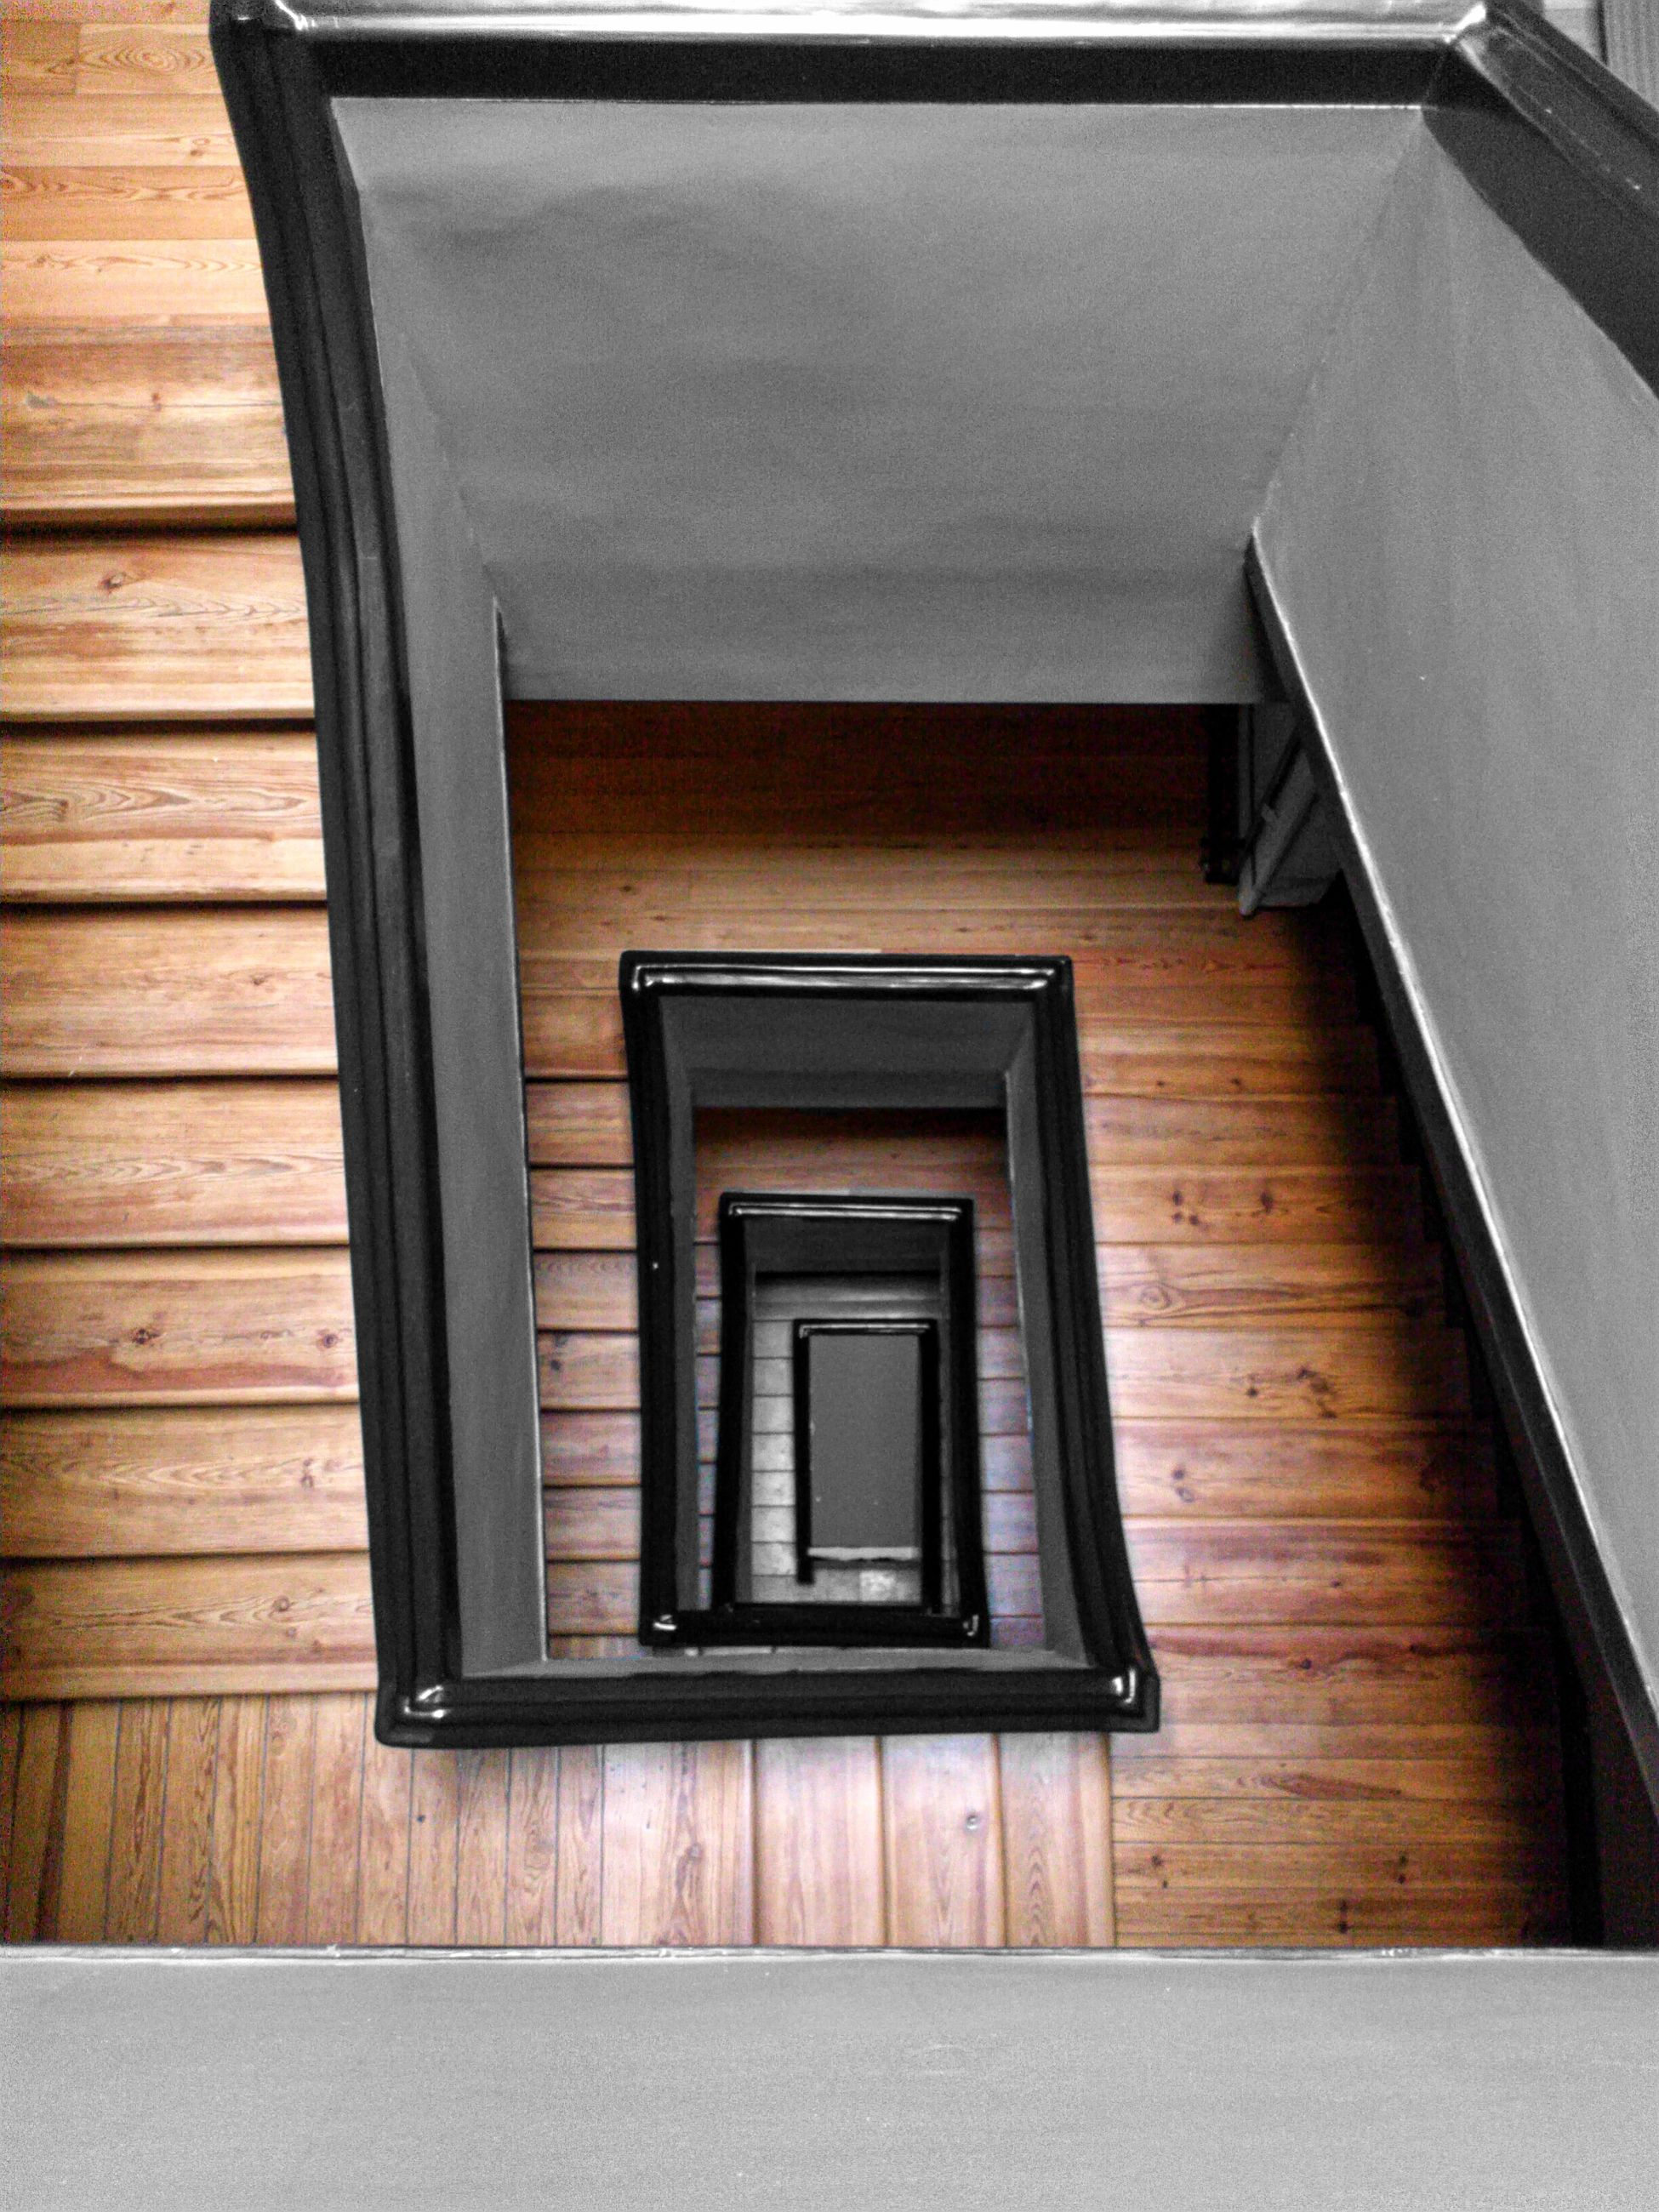 wood - material, indoors, architecture, built structure, wooden, house, window, wood, building exterior, door, no people, table, pattern, brown, directly above, high angle view, close-up, day, home interior, closed